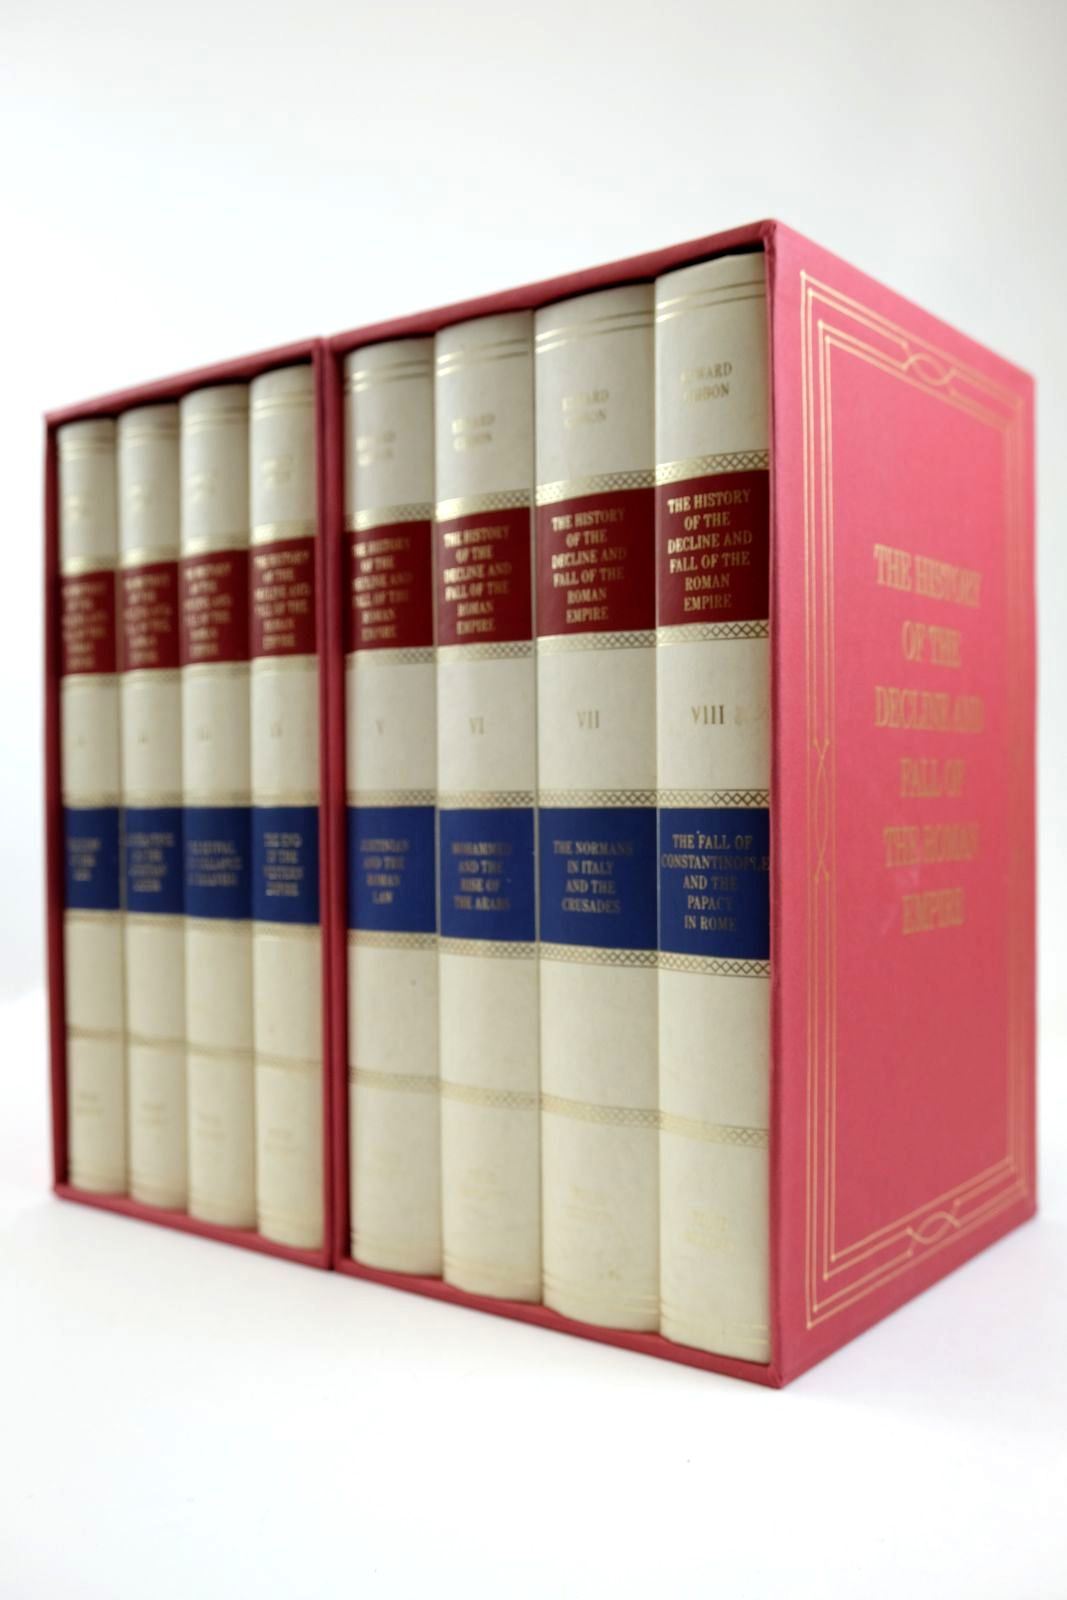 Photo of THE HISTORY OF THE DECLINE AND FALL OF THE ROMAN EMPIRE (8 VOLUMES) written by Gibbon, Edward published by Folio Society (STOCK CODE: 2132468)  for sale by Stella & Rose's Books